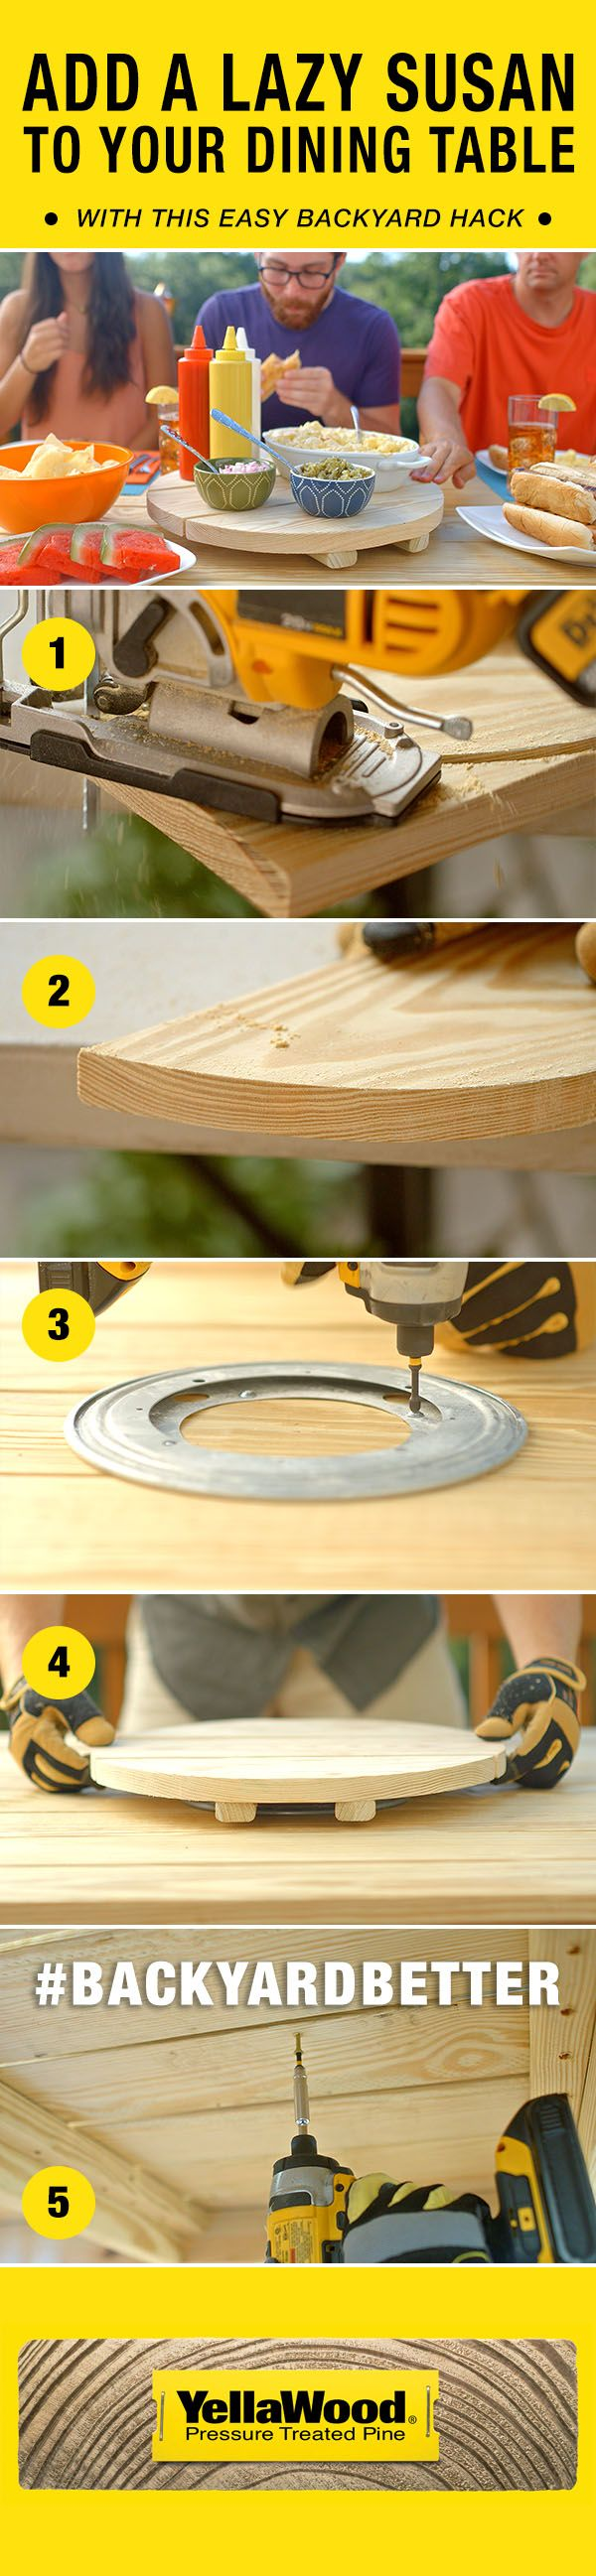 Add an extra star to your outdoor dining and relaxing with this easy Lazy Susan dining table backyard hack. #backyardbetter